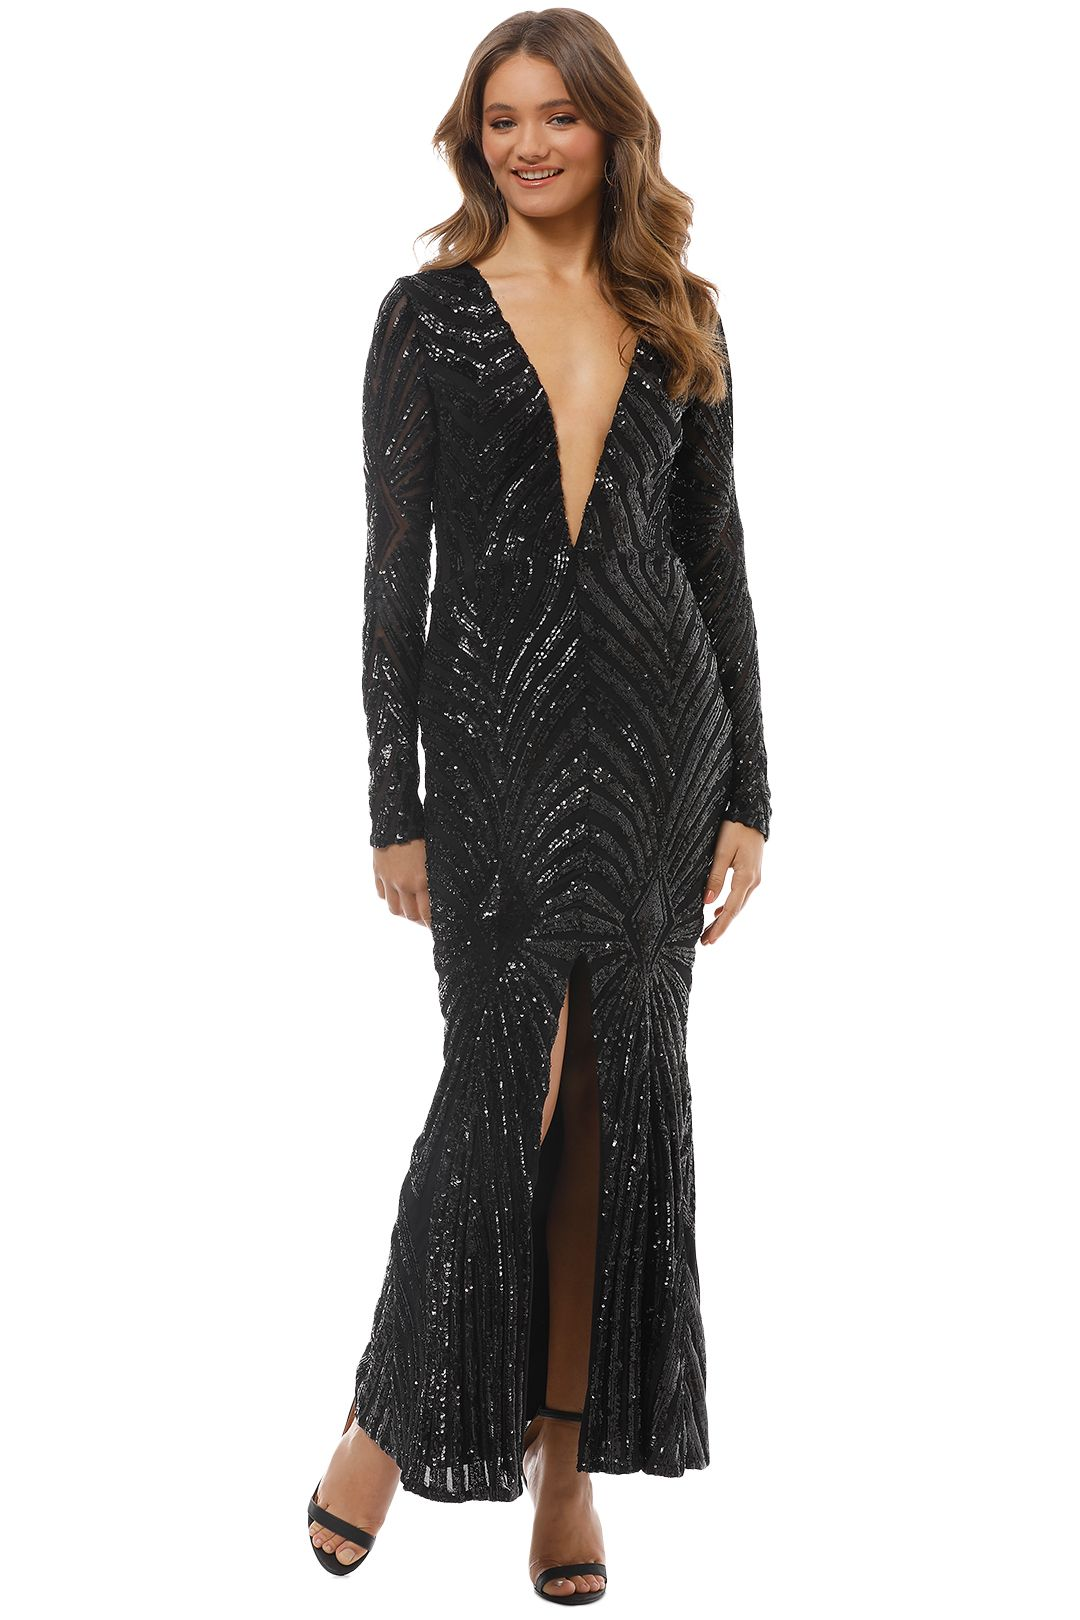 Ae'lkemi - Art Deco Sequin Gown - Black - Front